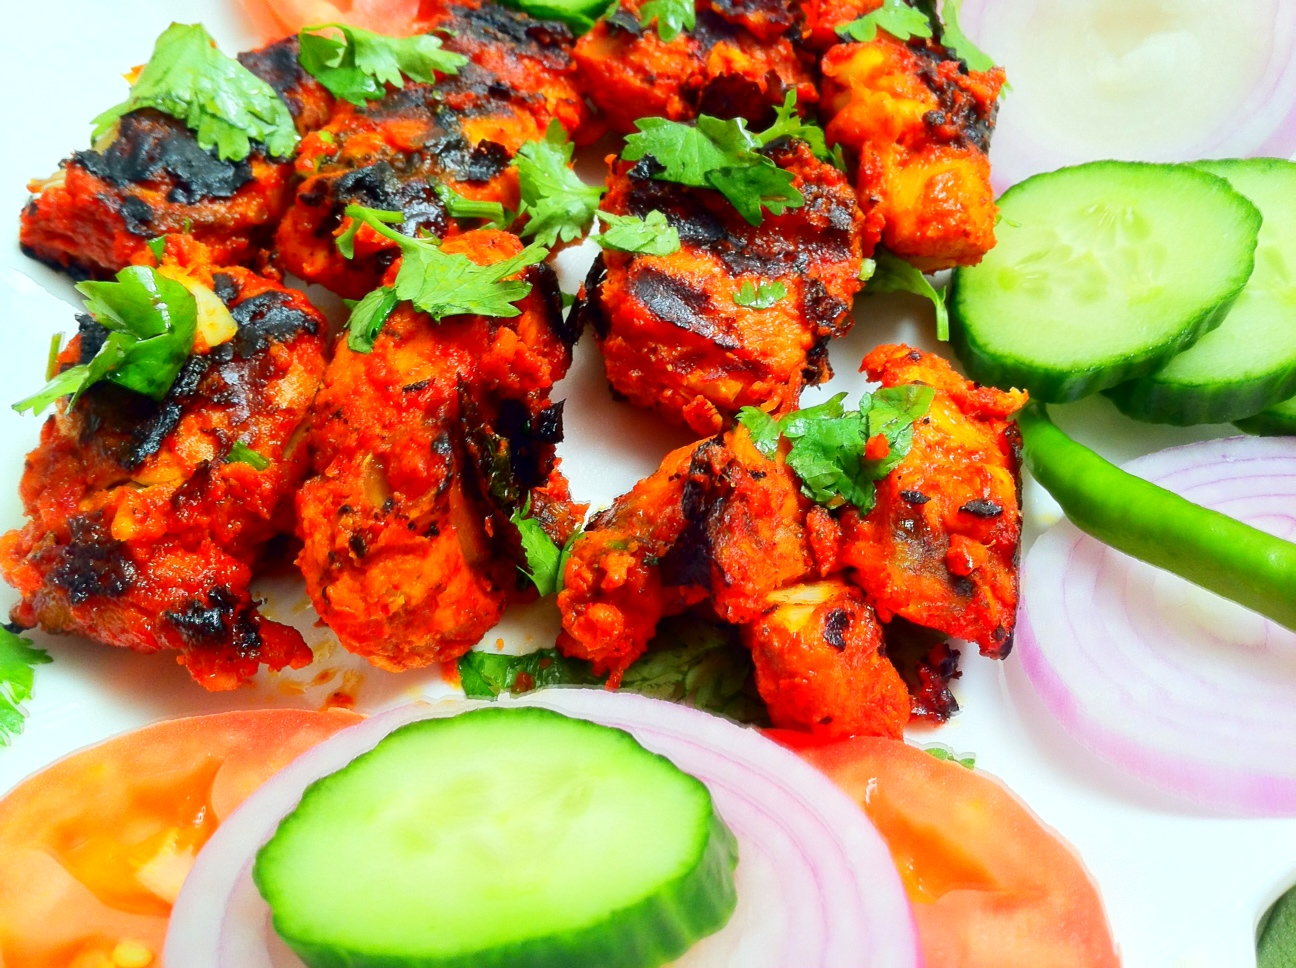 Fish Tikka - Boneless Fish Pieces in Grill Oven